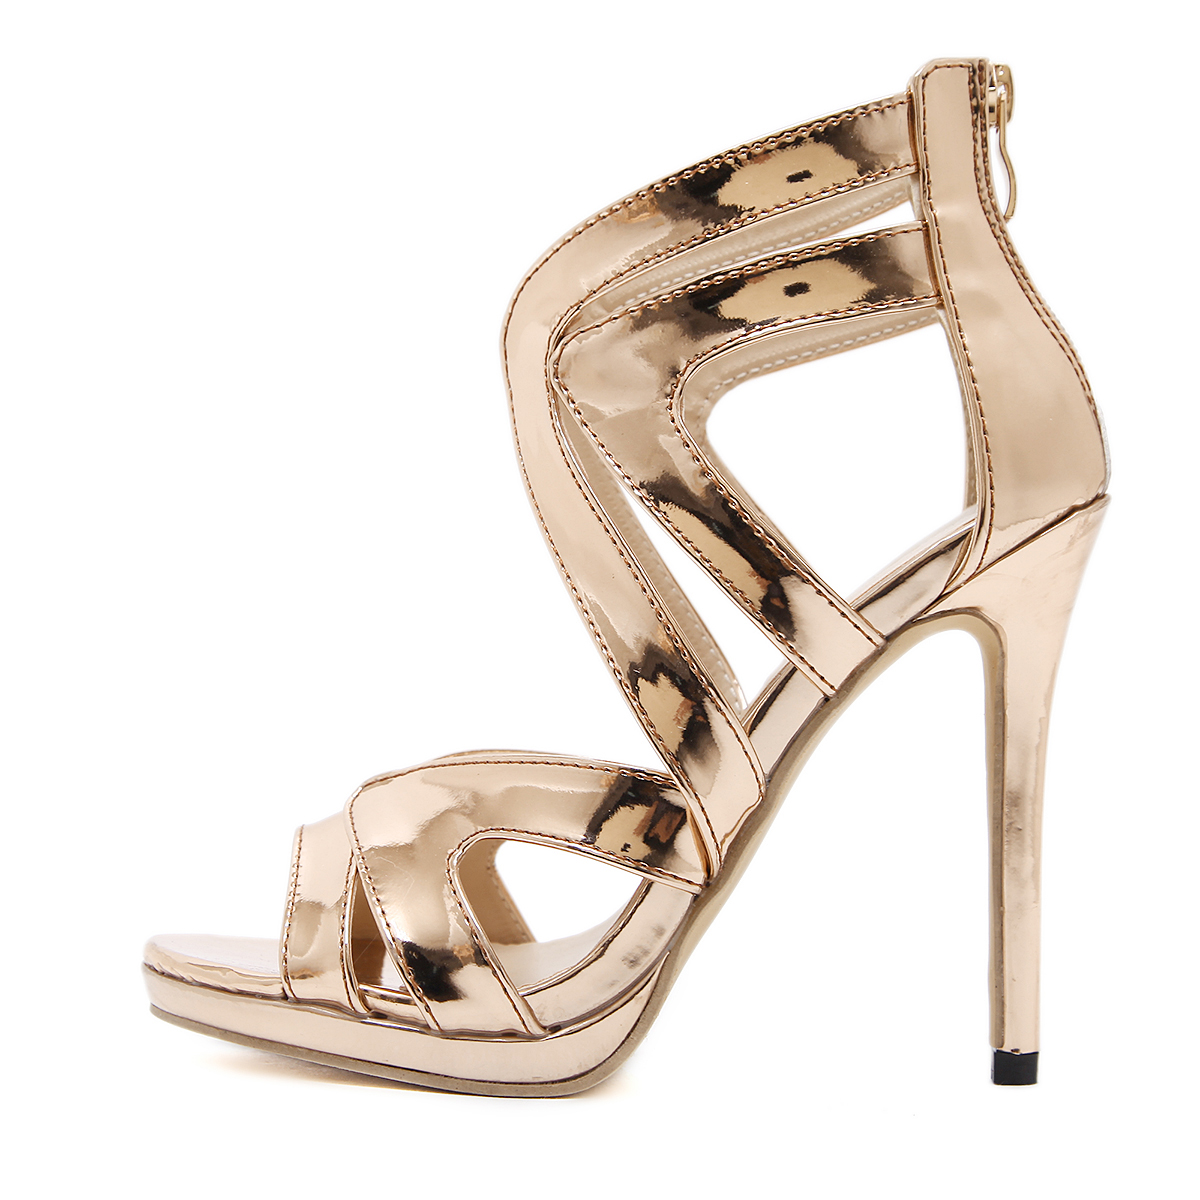 Street showered high-heeled sandals - champagne's main photo